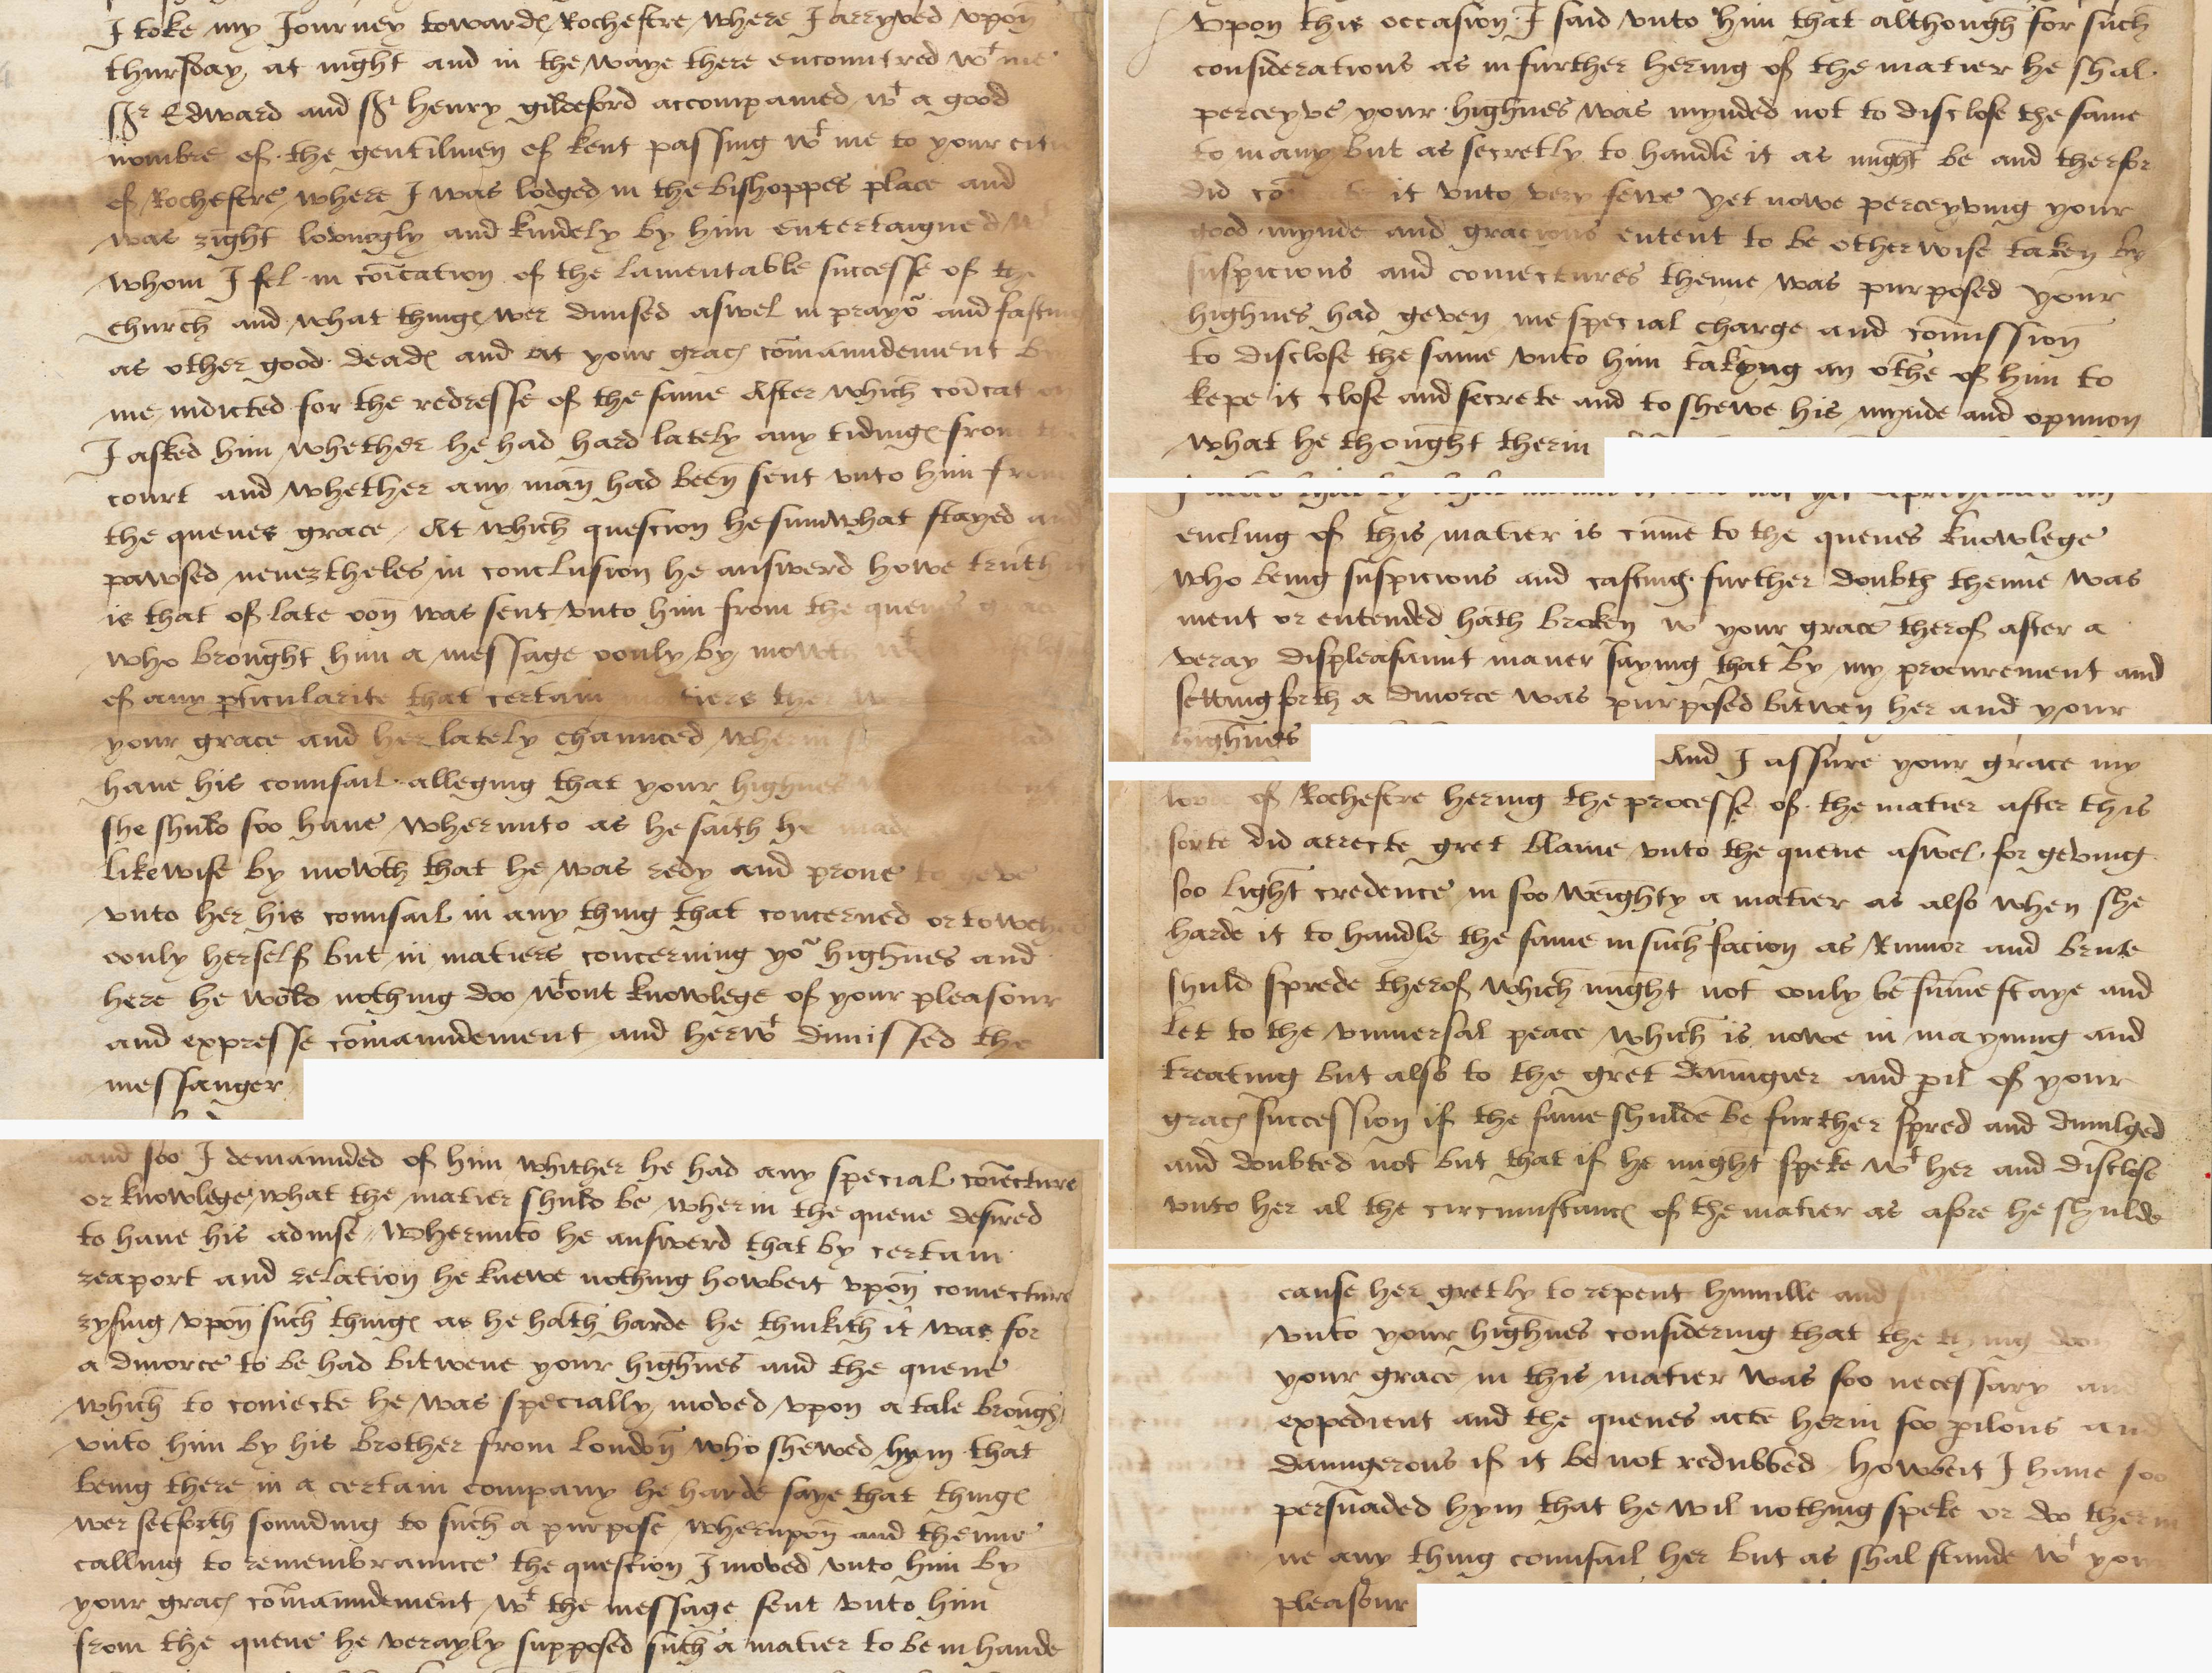 Henry VIII's divorce 1527 - The National Archives